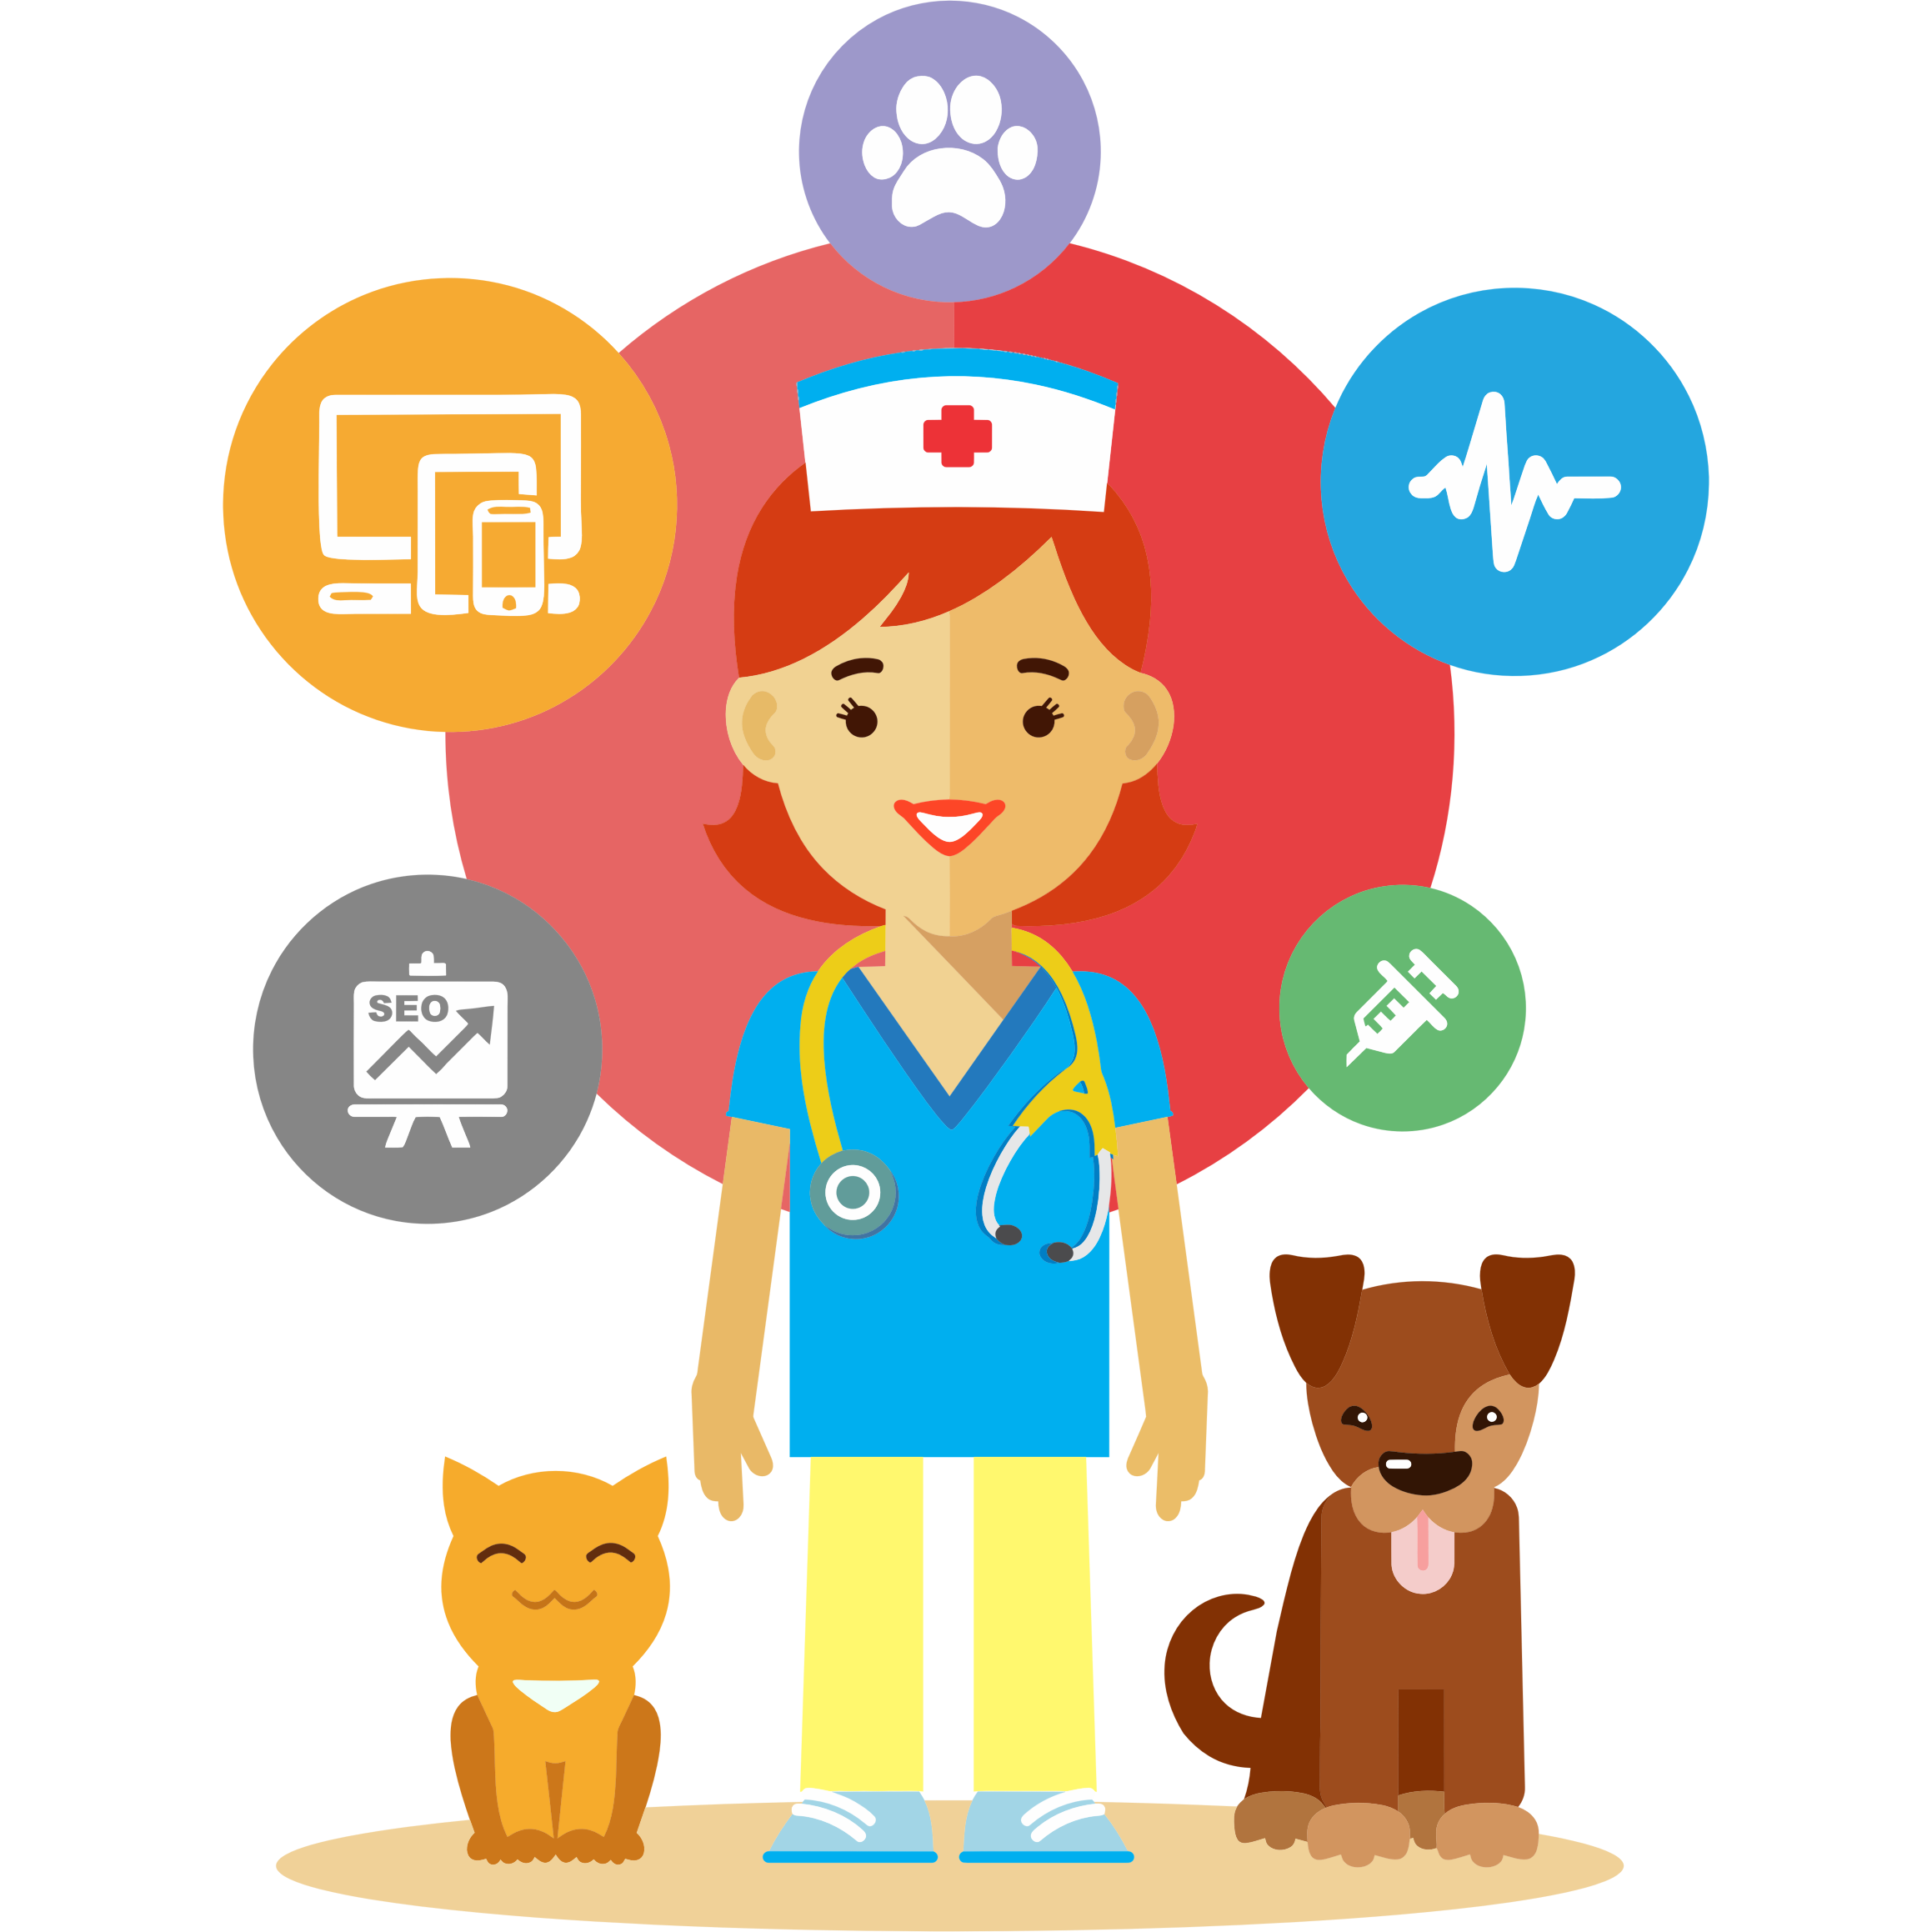 Cartoon veterinary clipart images gallery for free download.